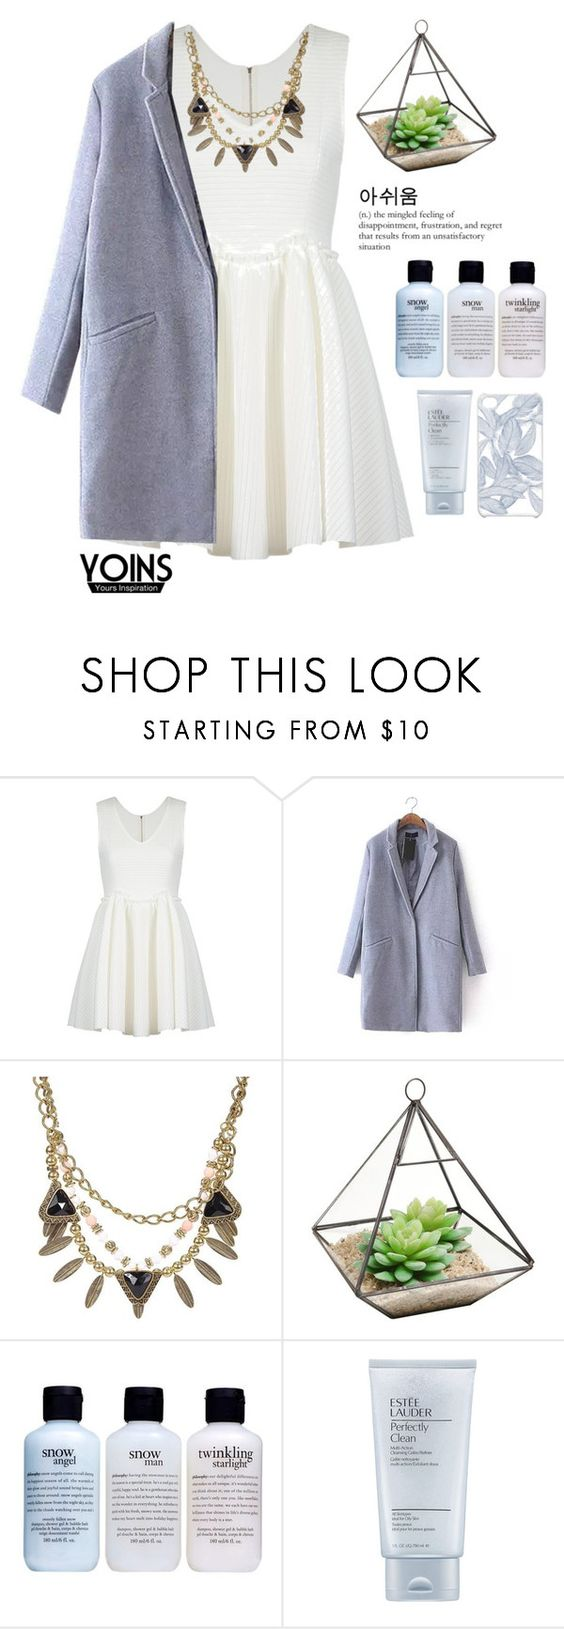 """#Yoins"" by credentovideos ❤ liked on Polyvore featuring Oom, philosophy, Estée Lauder and CO"